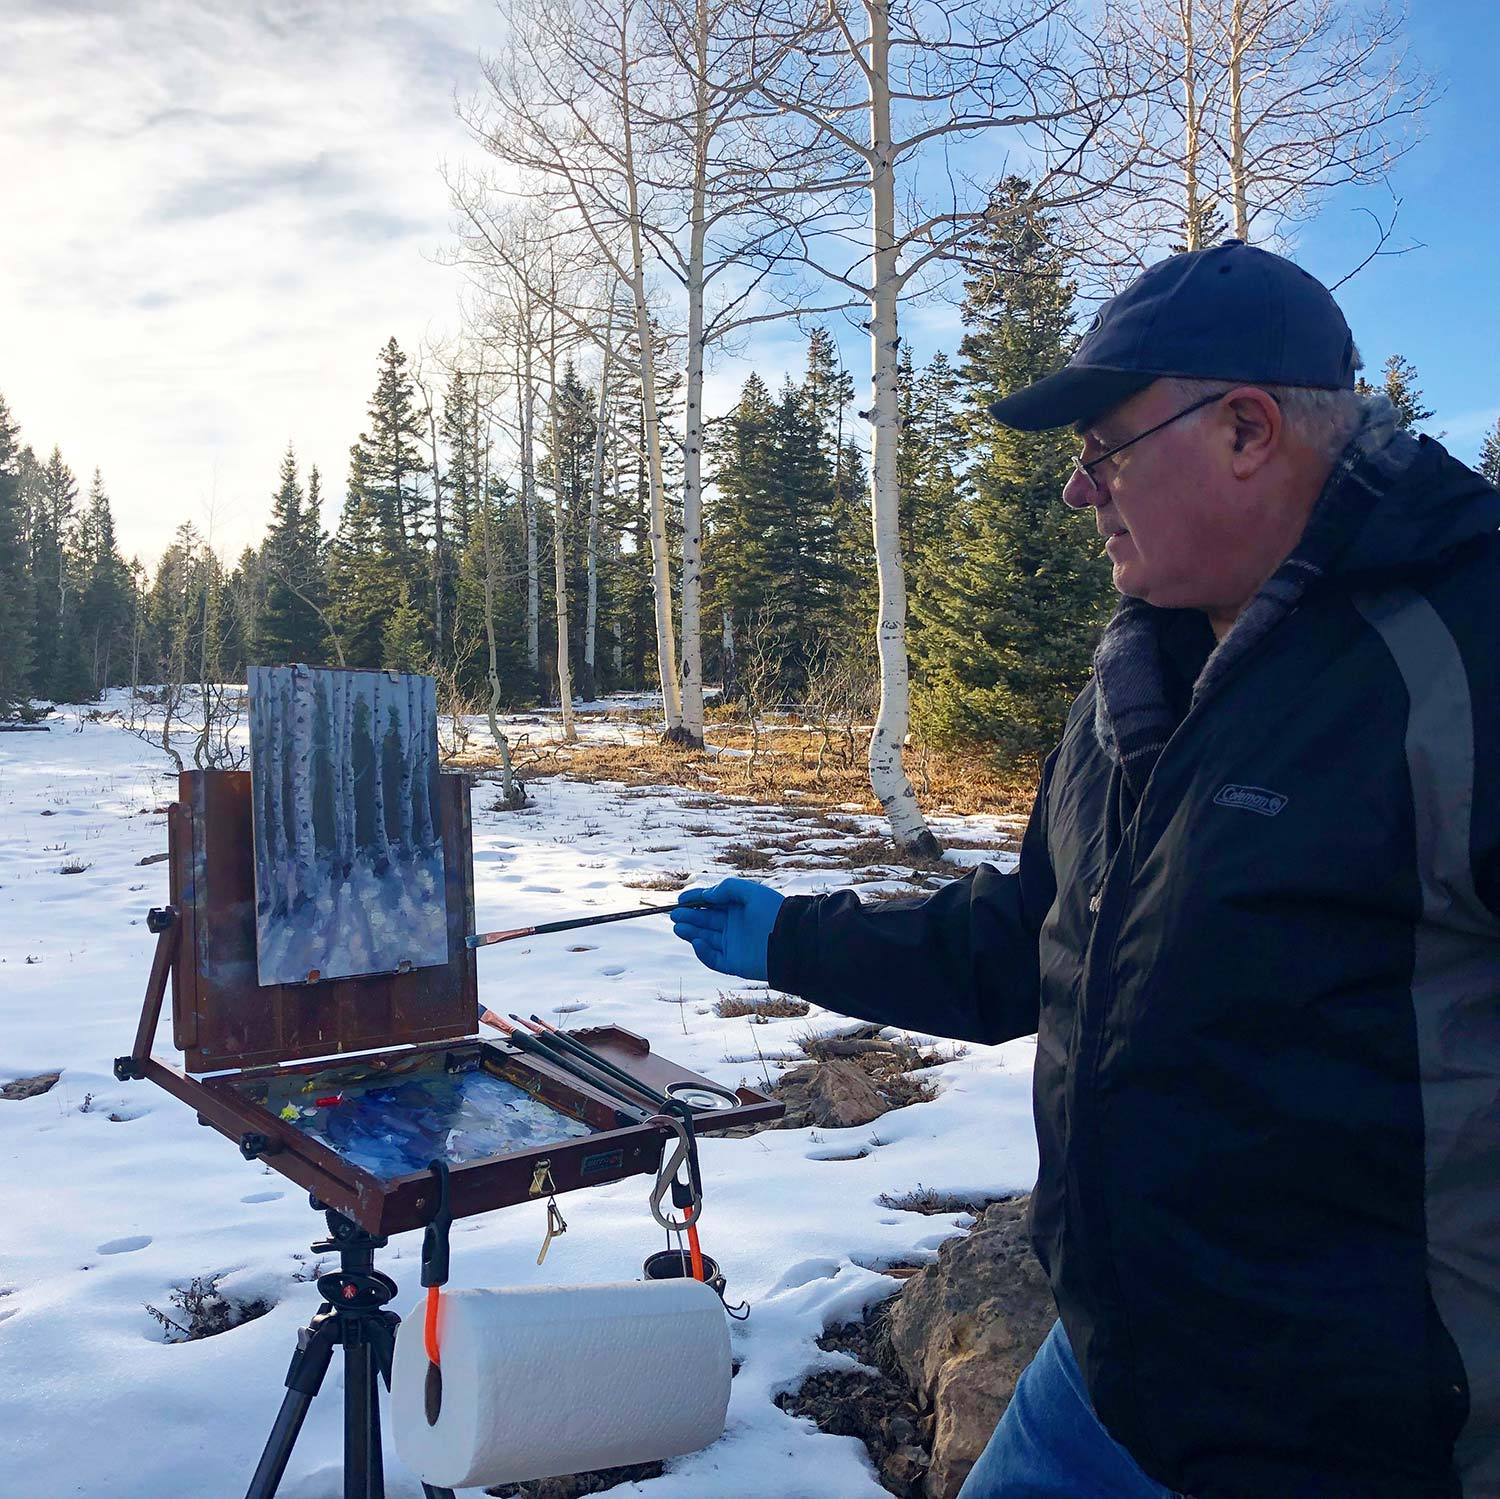 Carl Olson painting among the aspens on Divide Road at over 9,000' feet above sea level. Yes, it was cold!